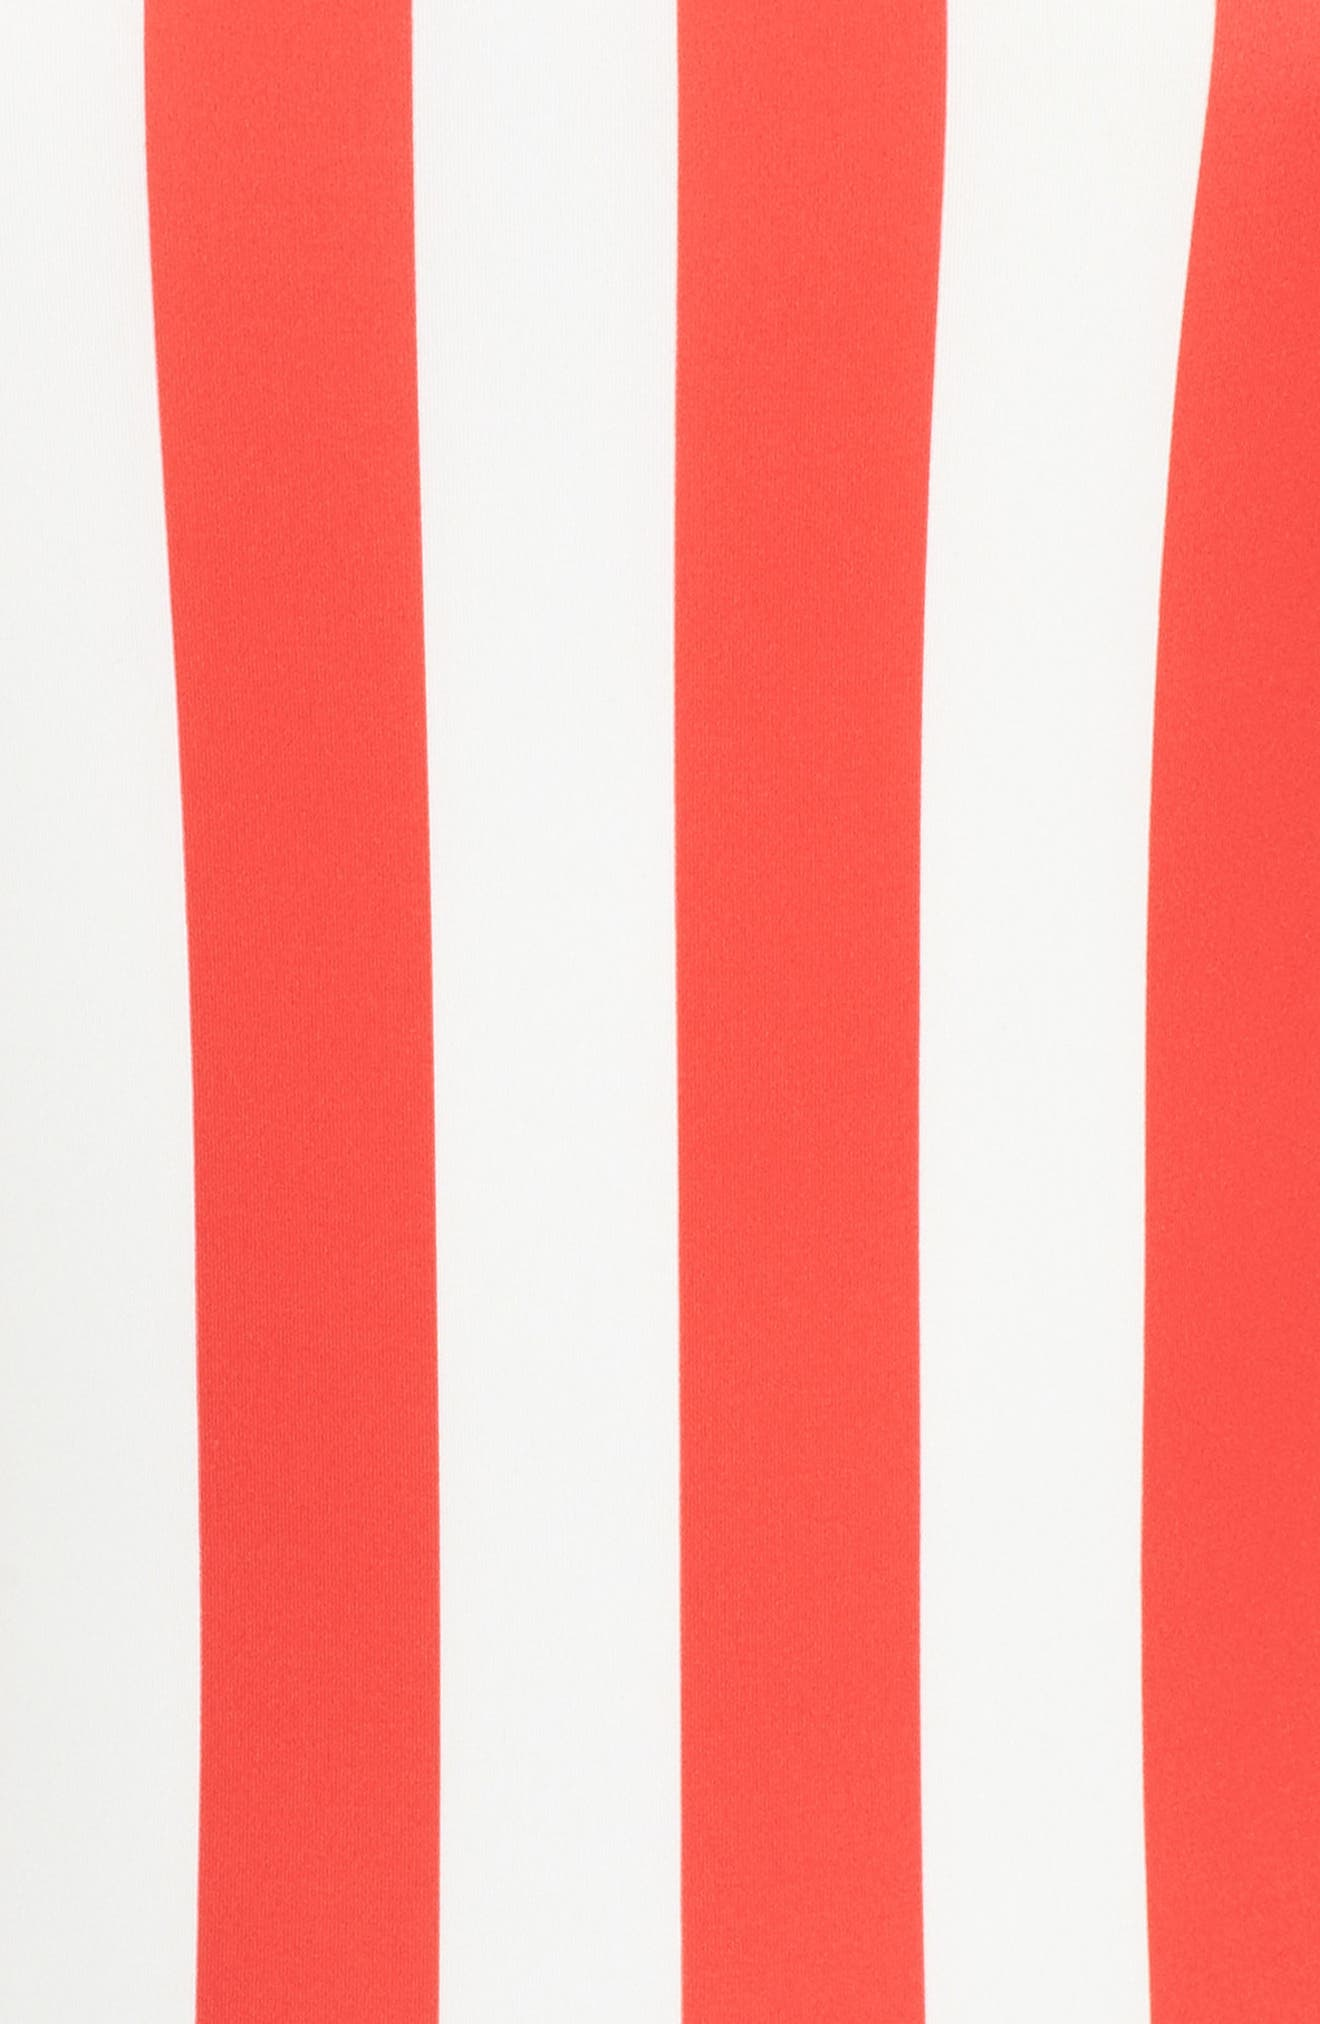 Striped & Solid Chelsea One-Piece Swimsuit,                             Alternate thumbnail 9, color,